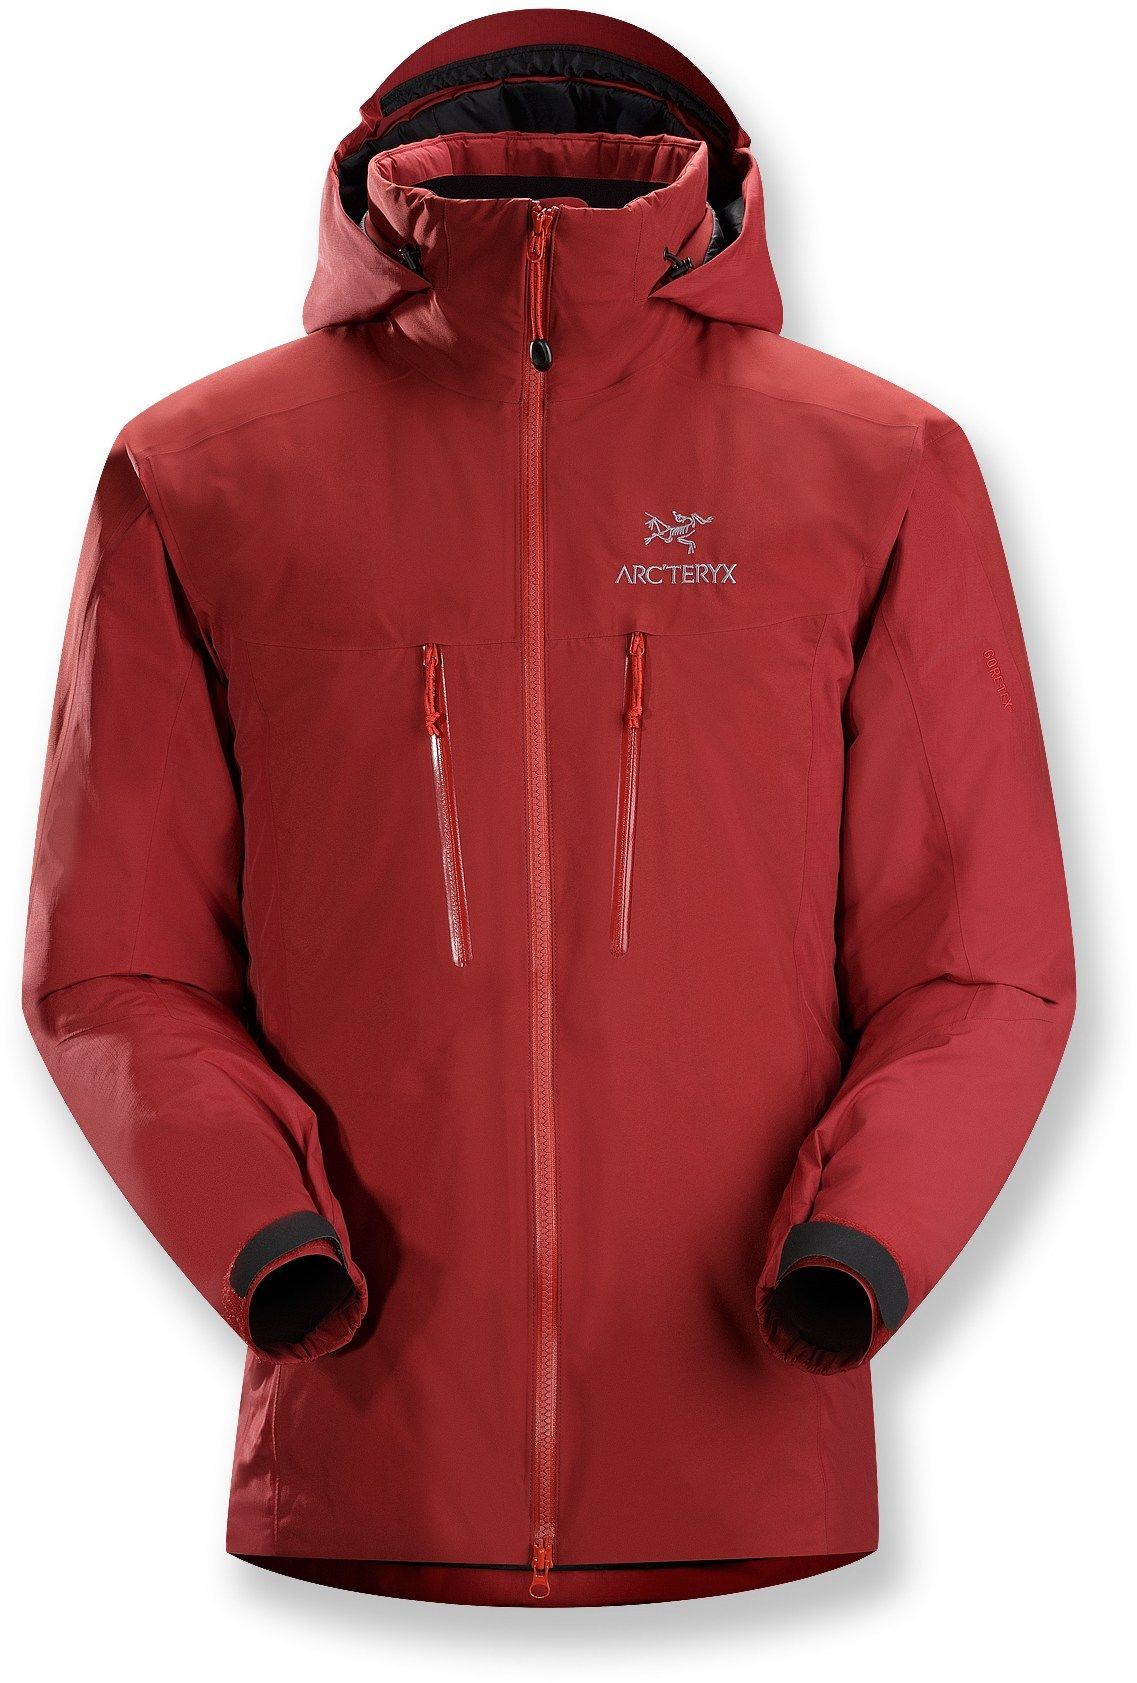 Arc'teryx Fission SV Insulated Jacket Men's | REI Co op